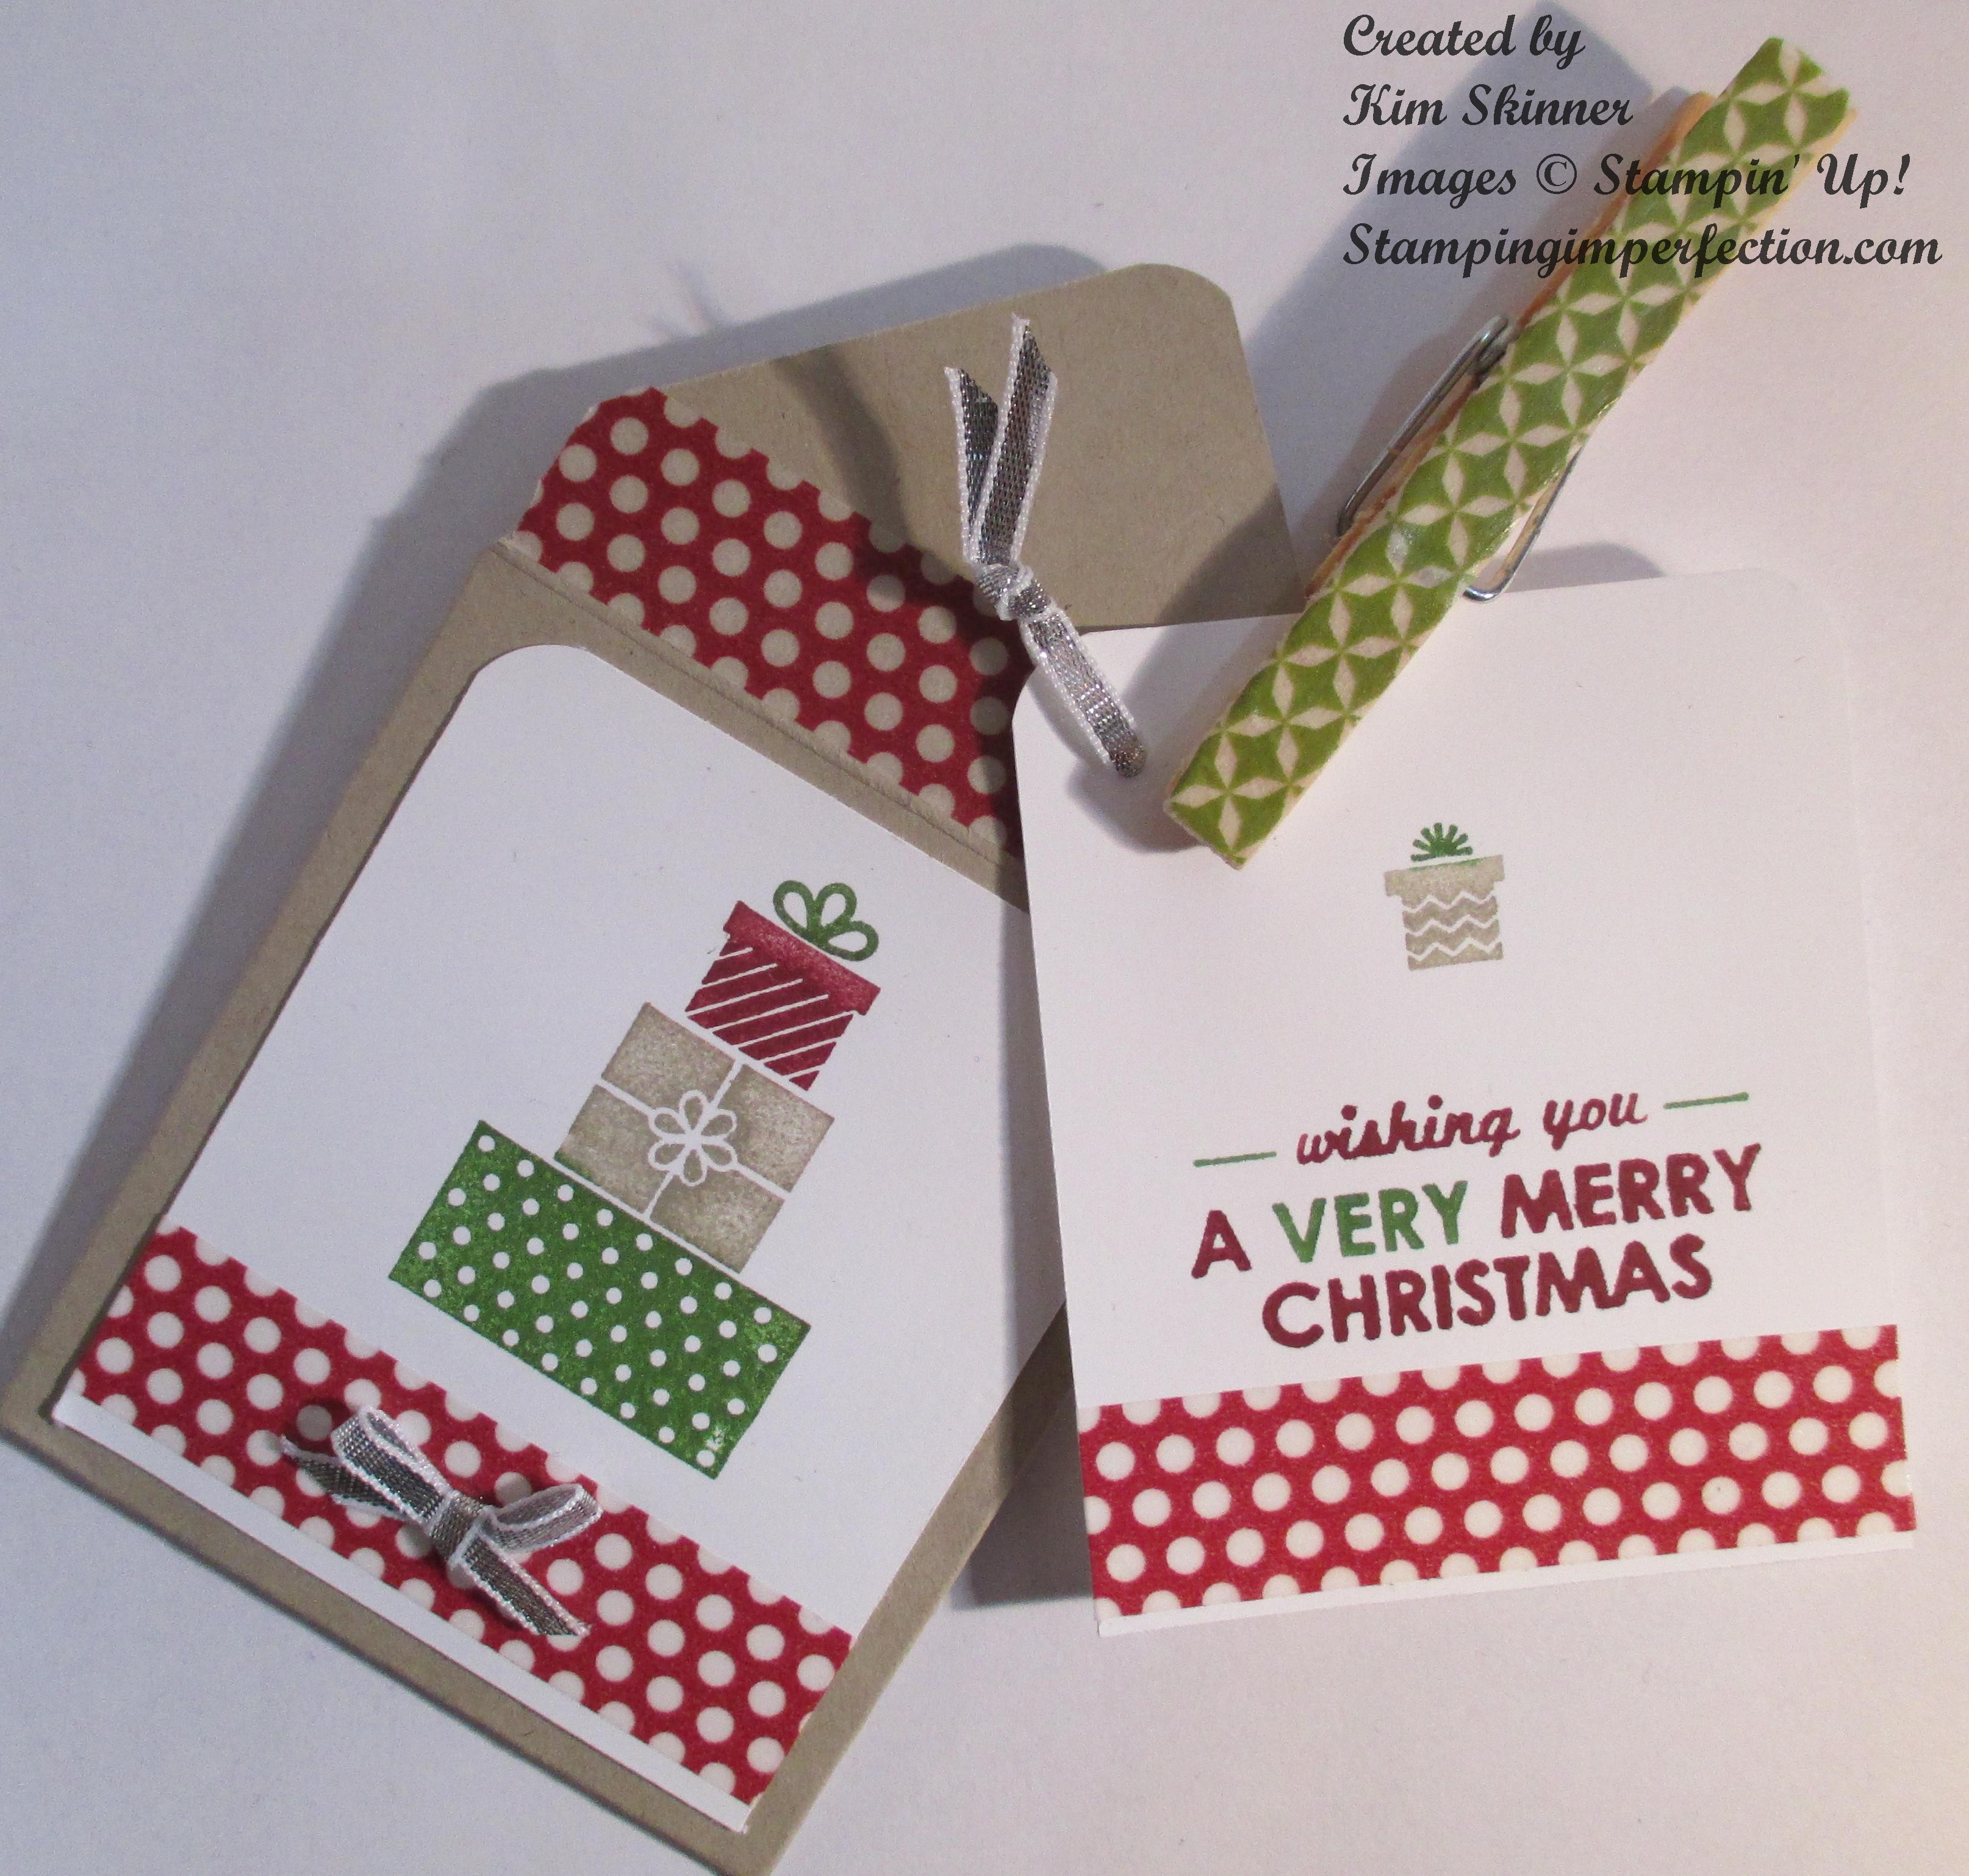 Create a quick envelope and gift tag